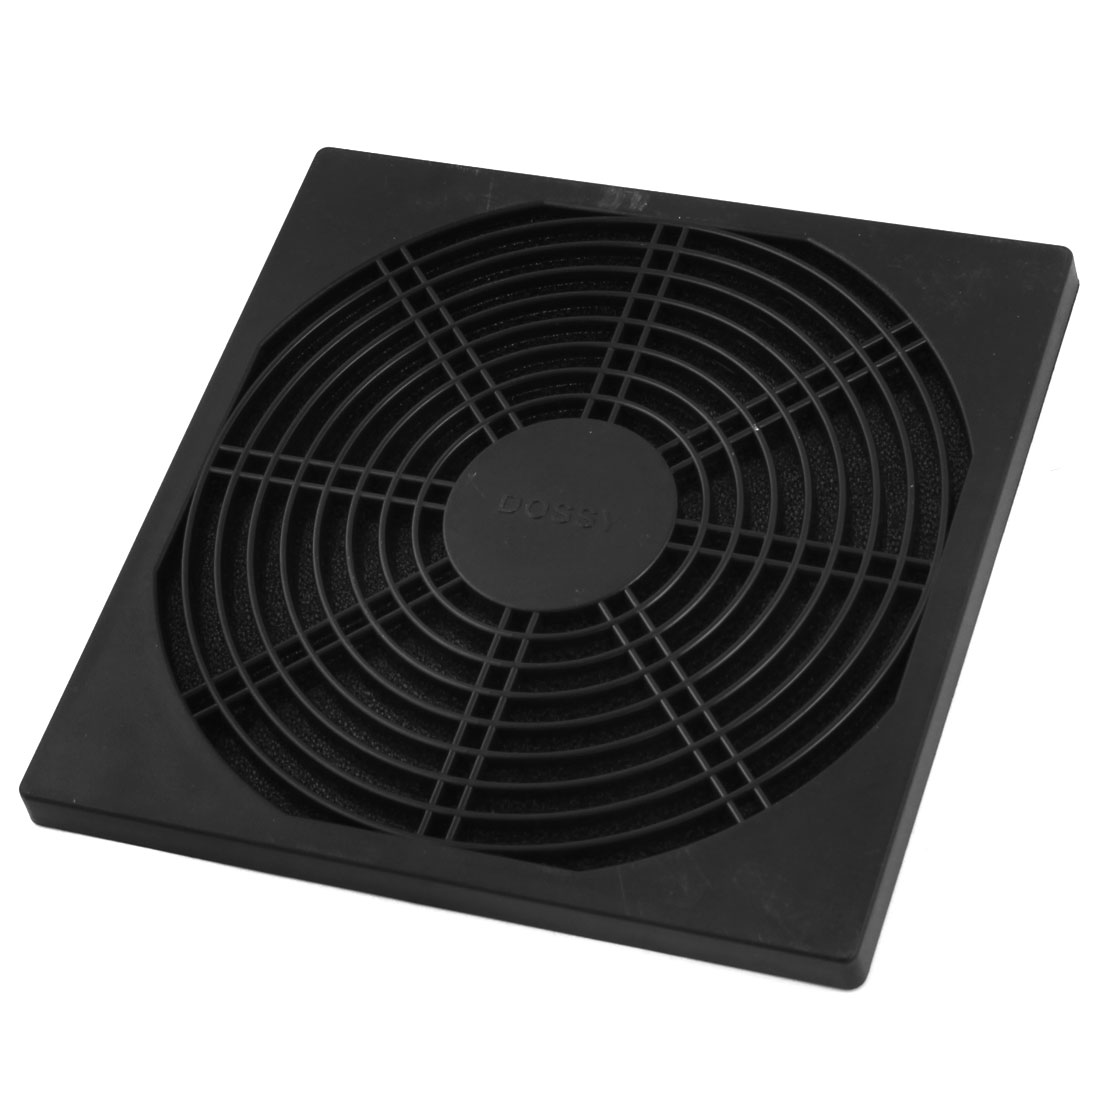 Black Plastic Dustproof 172mm x 172mm Cooling Fan Dust Filter Guard